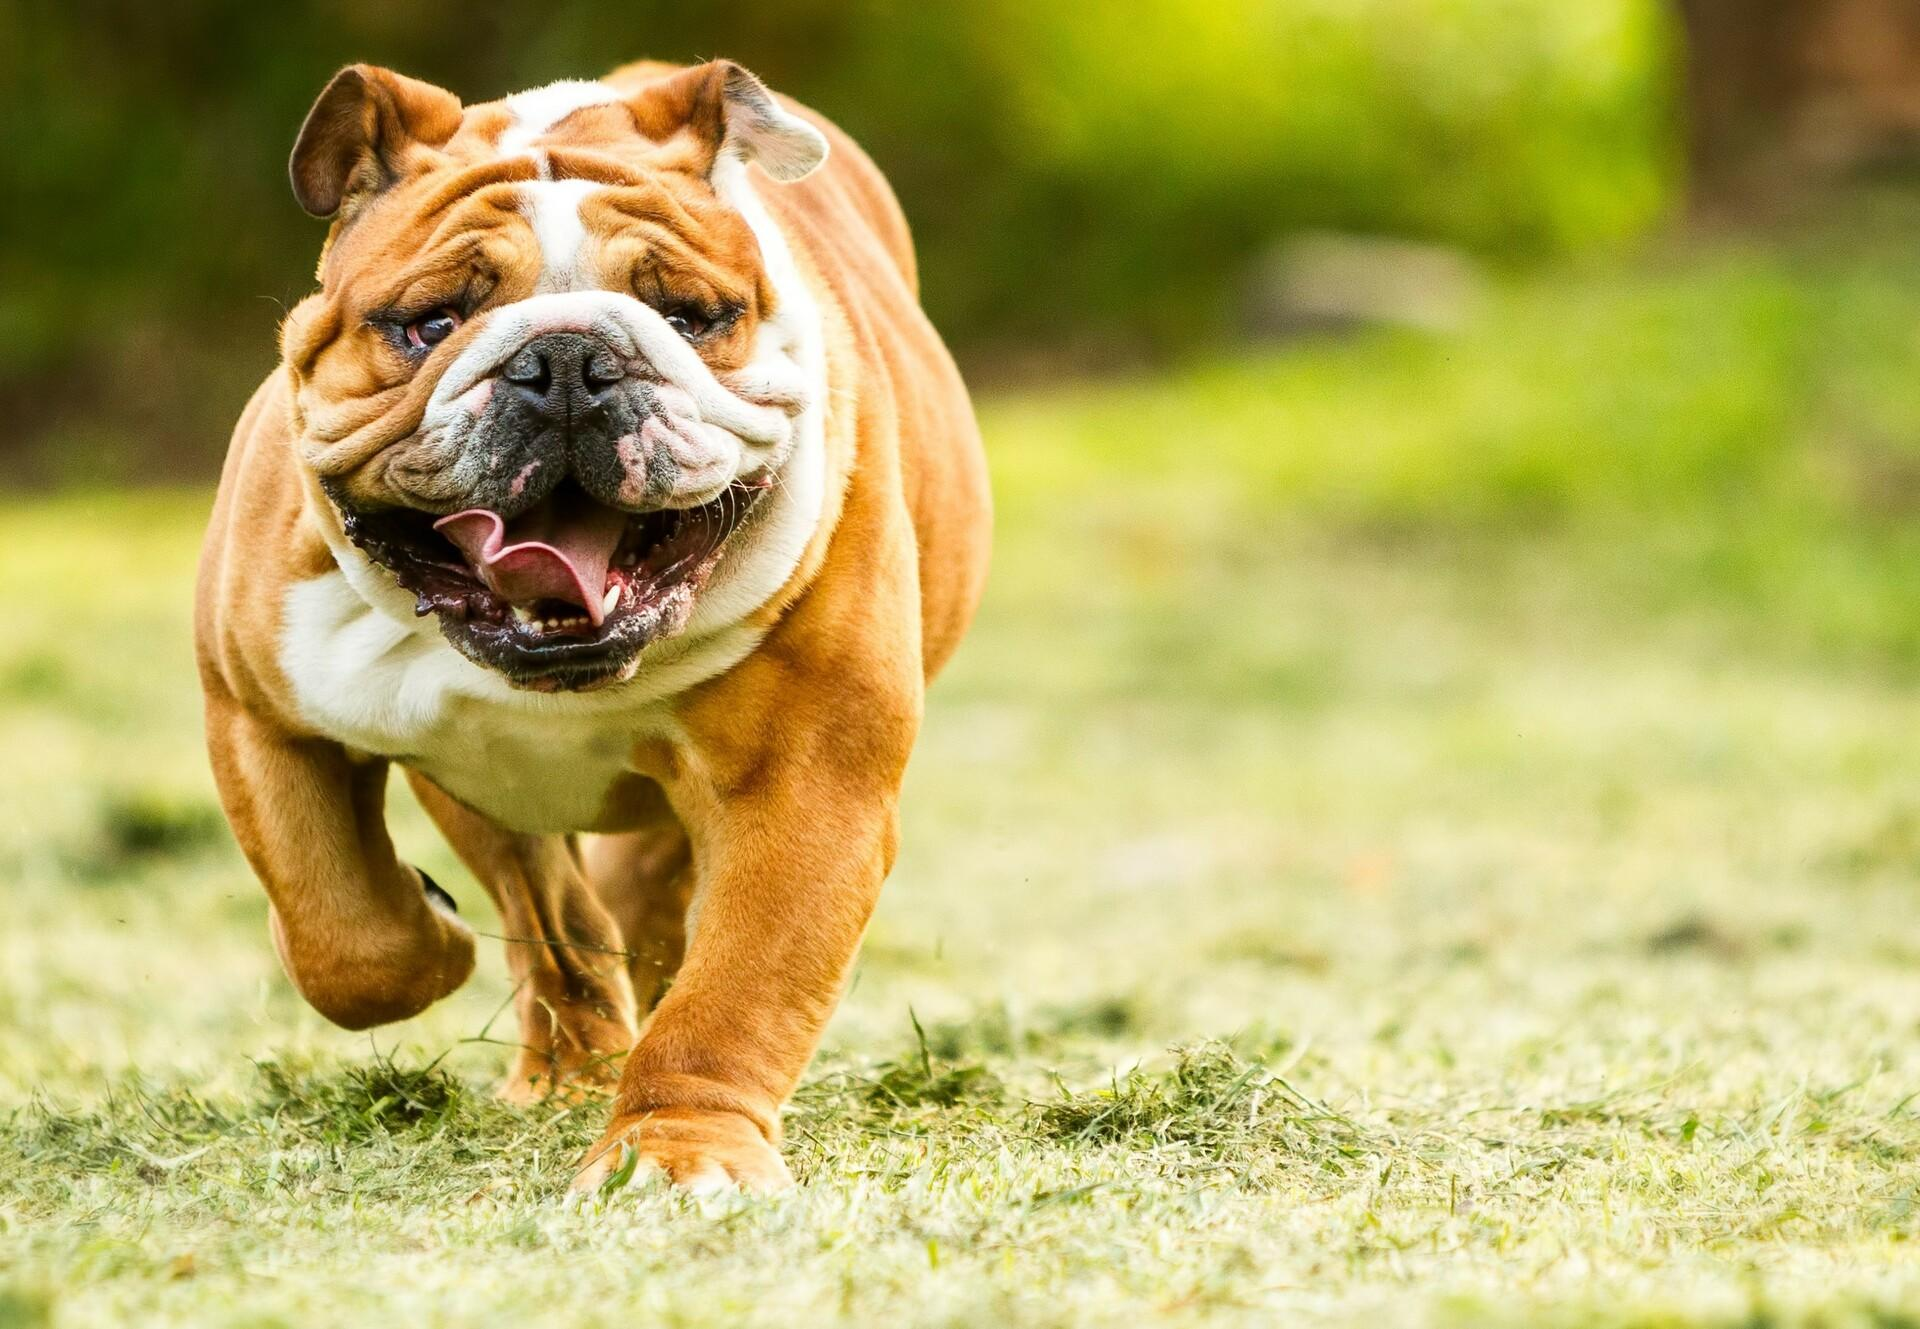 The breed standard for Bulldogs is one example